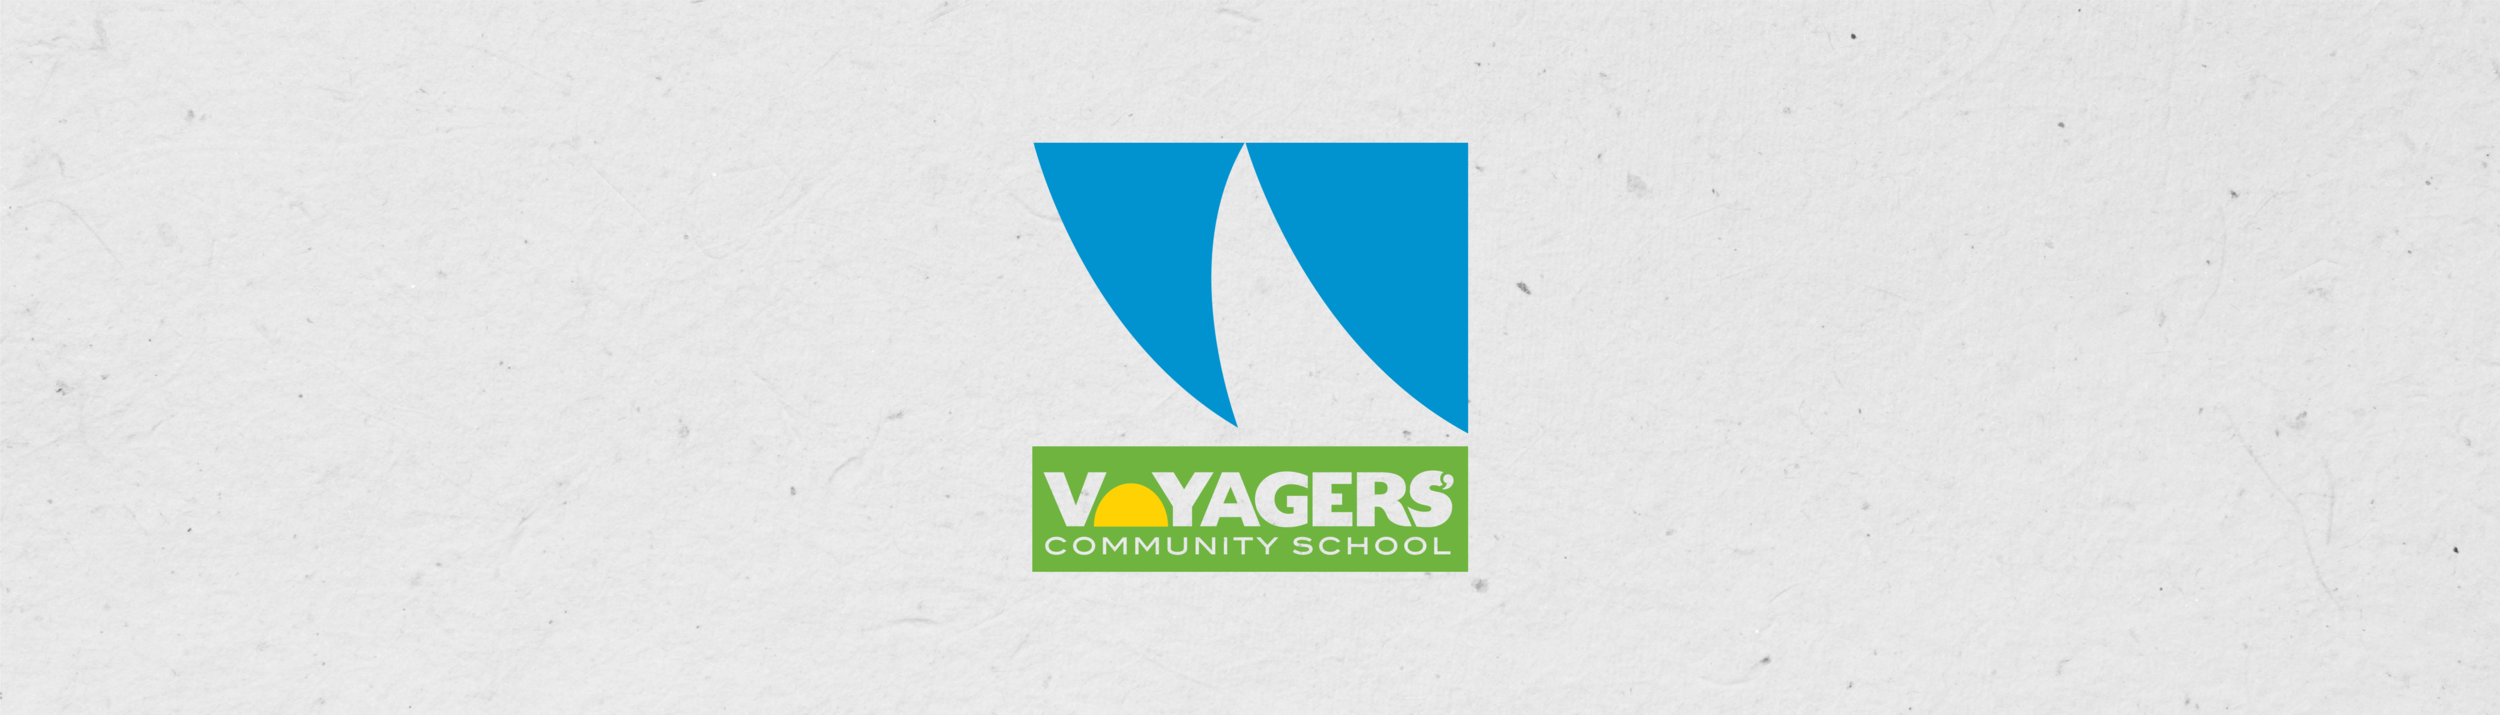 Voyagers Behance -04.png